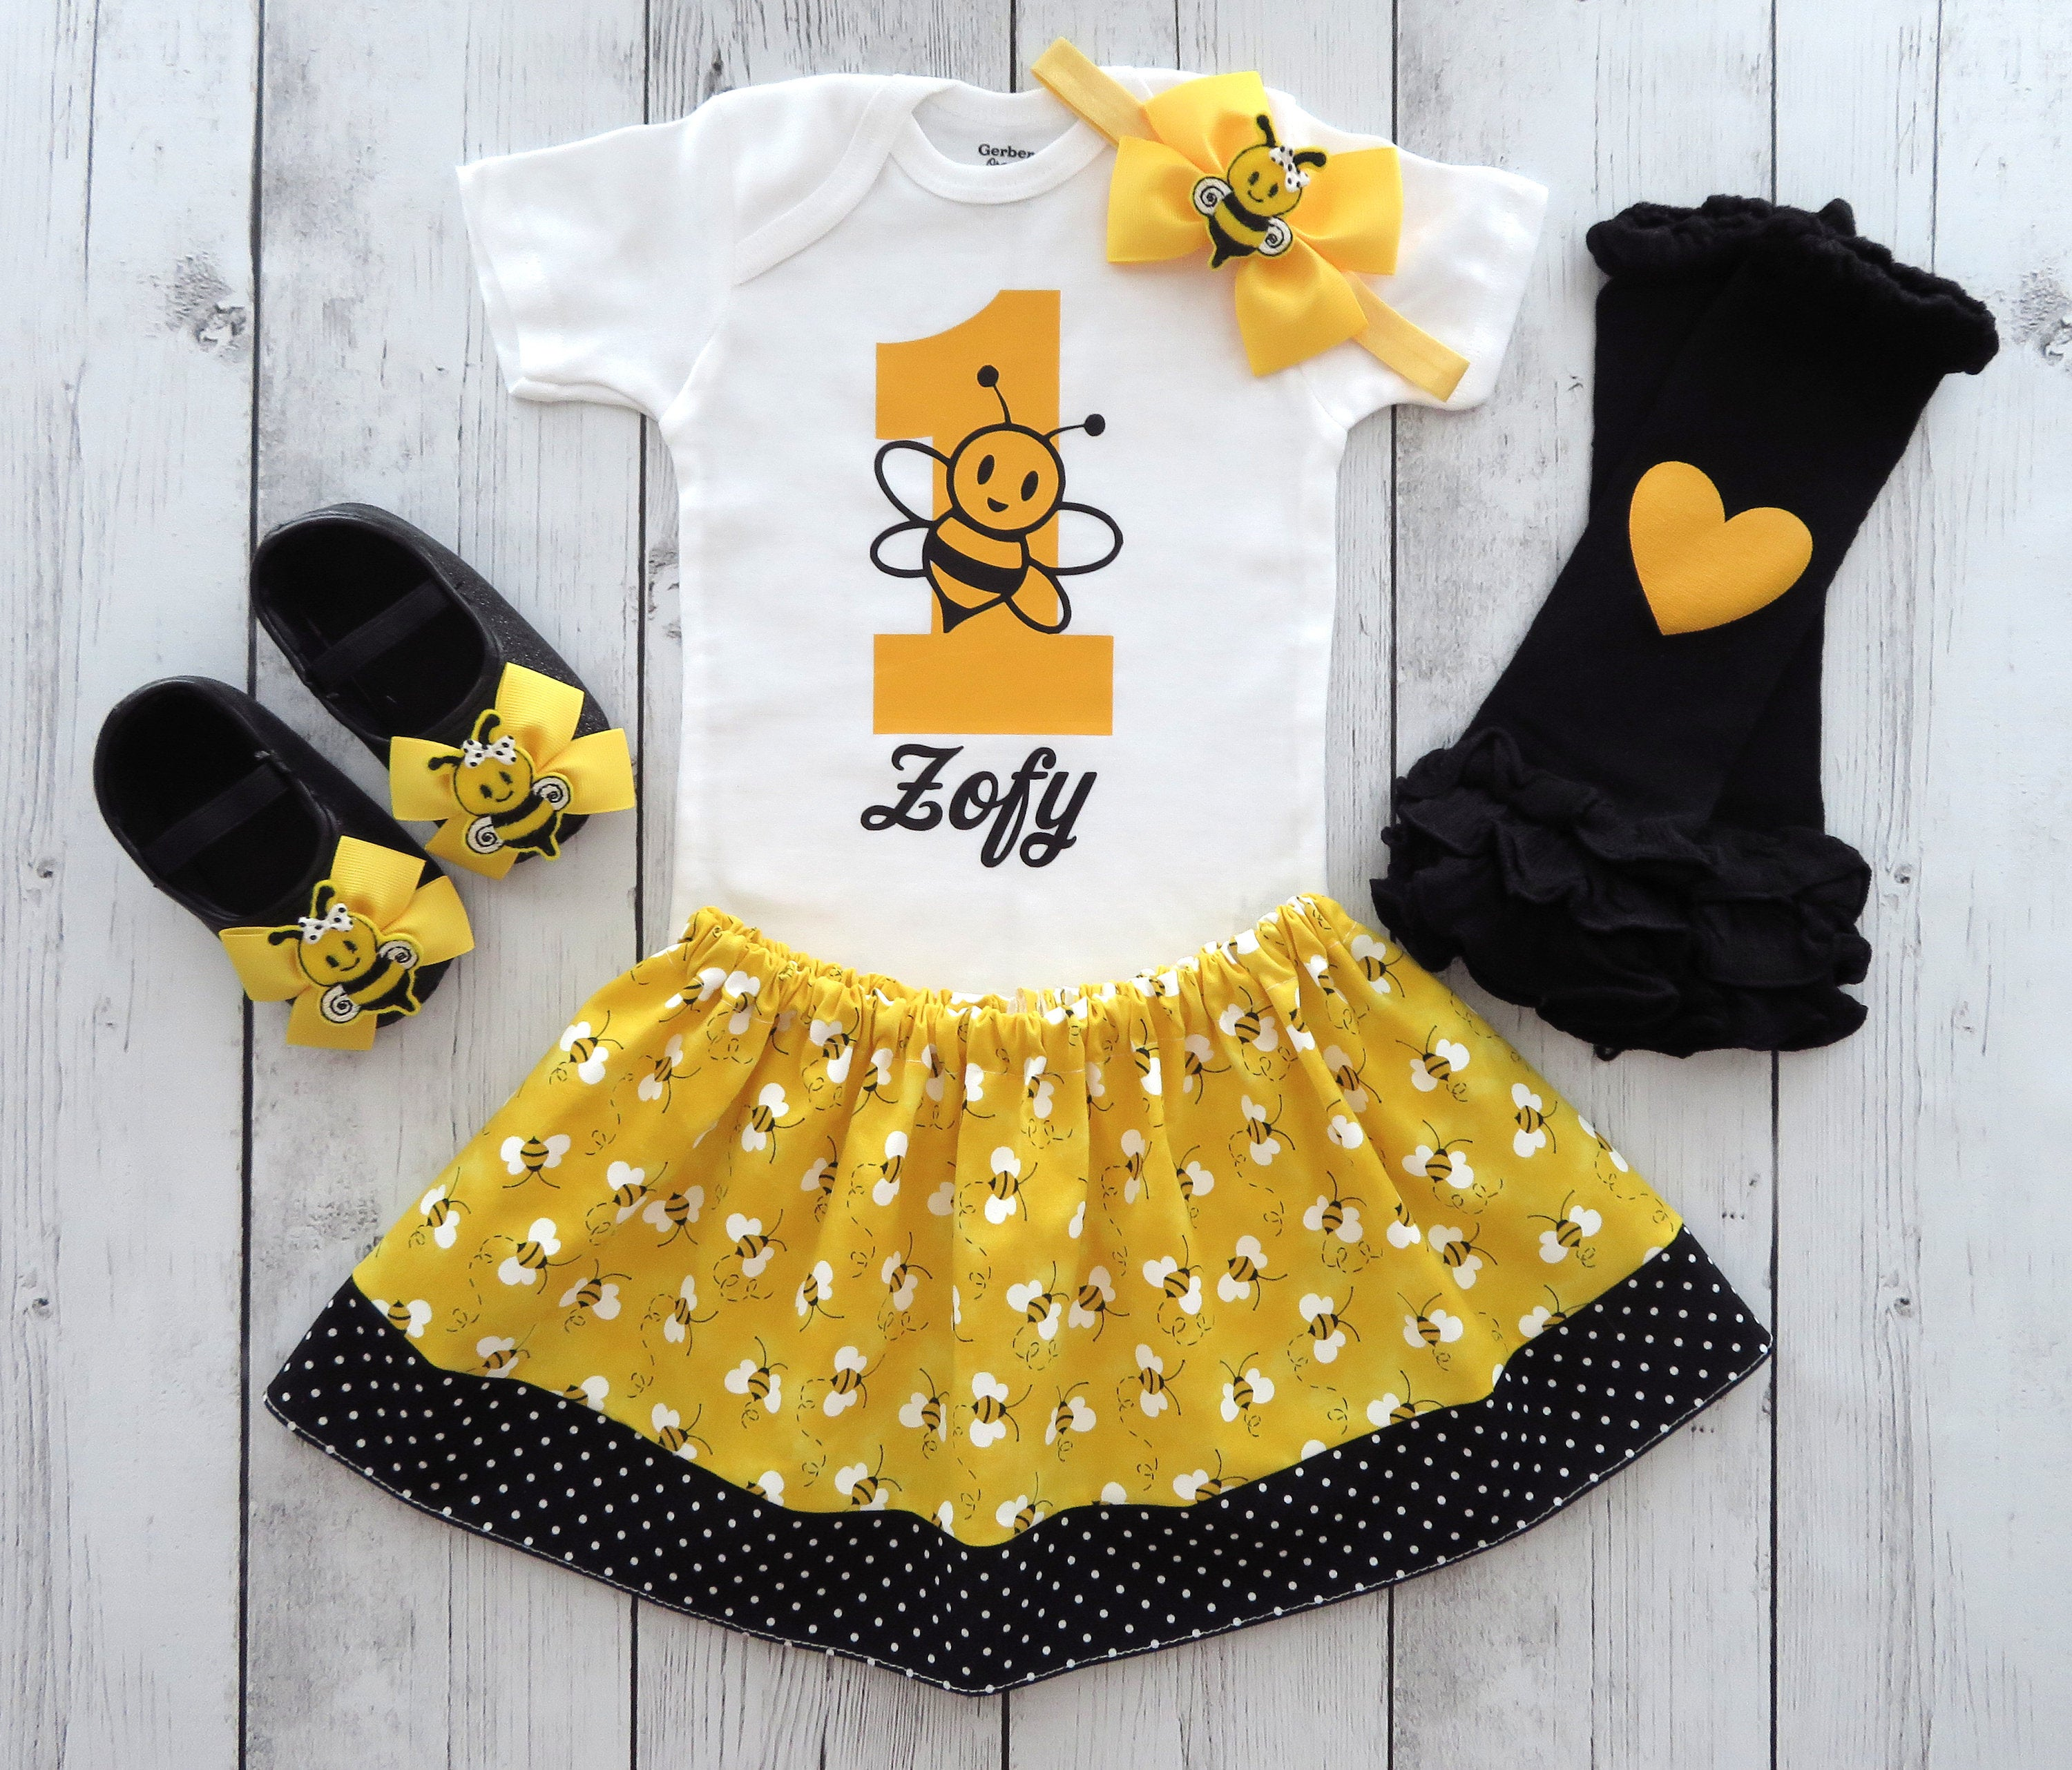 Bumble Bee First Birthday Outfit for baby girl - yellow black, bumble bee girl birthday outfit, bumble bee skirt, 1st bday outfit girl bee